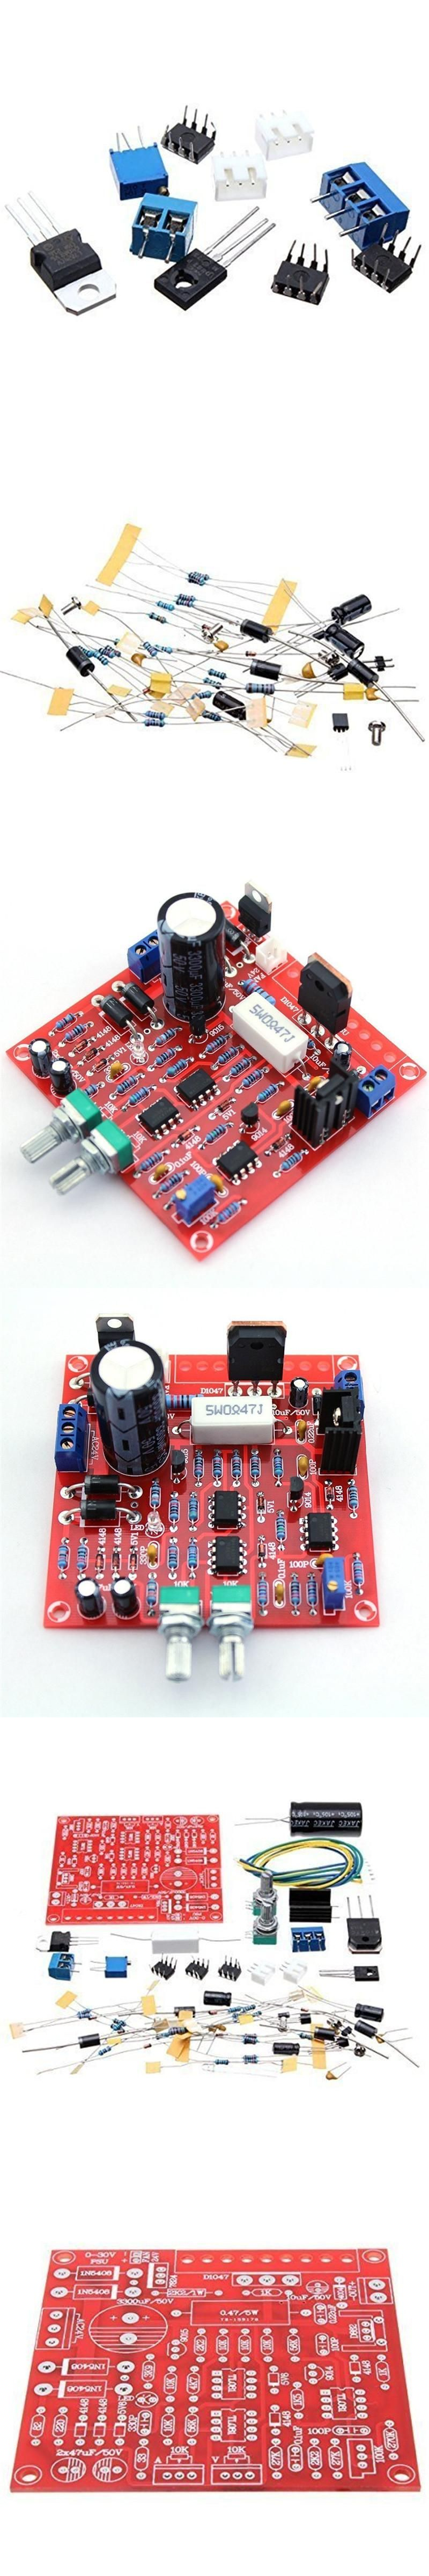 Factory Free Shipping 0 30v 2ma 3a Adjustable Dc Regulated Power This Is A Supply With Short Circuit Protection And Diy Kit